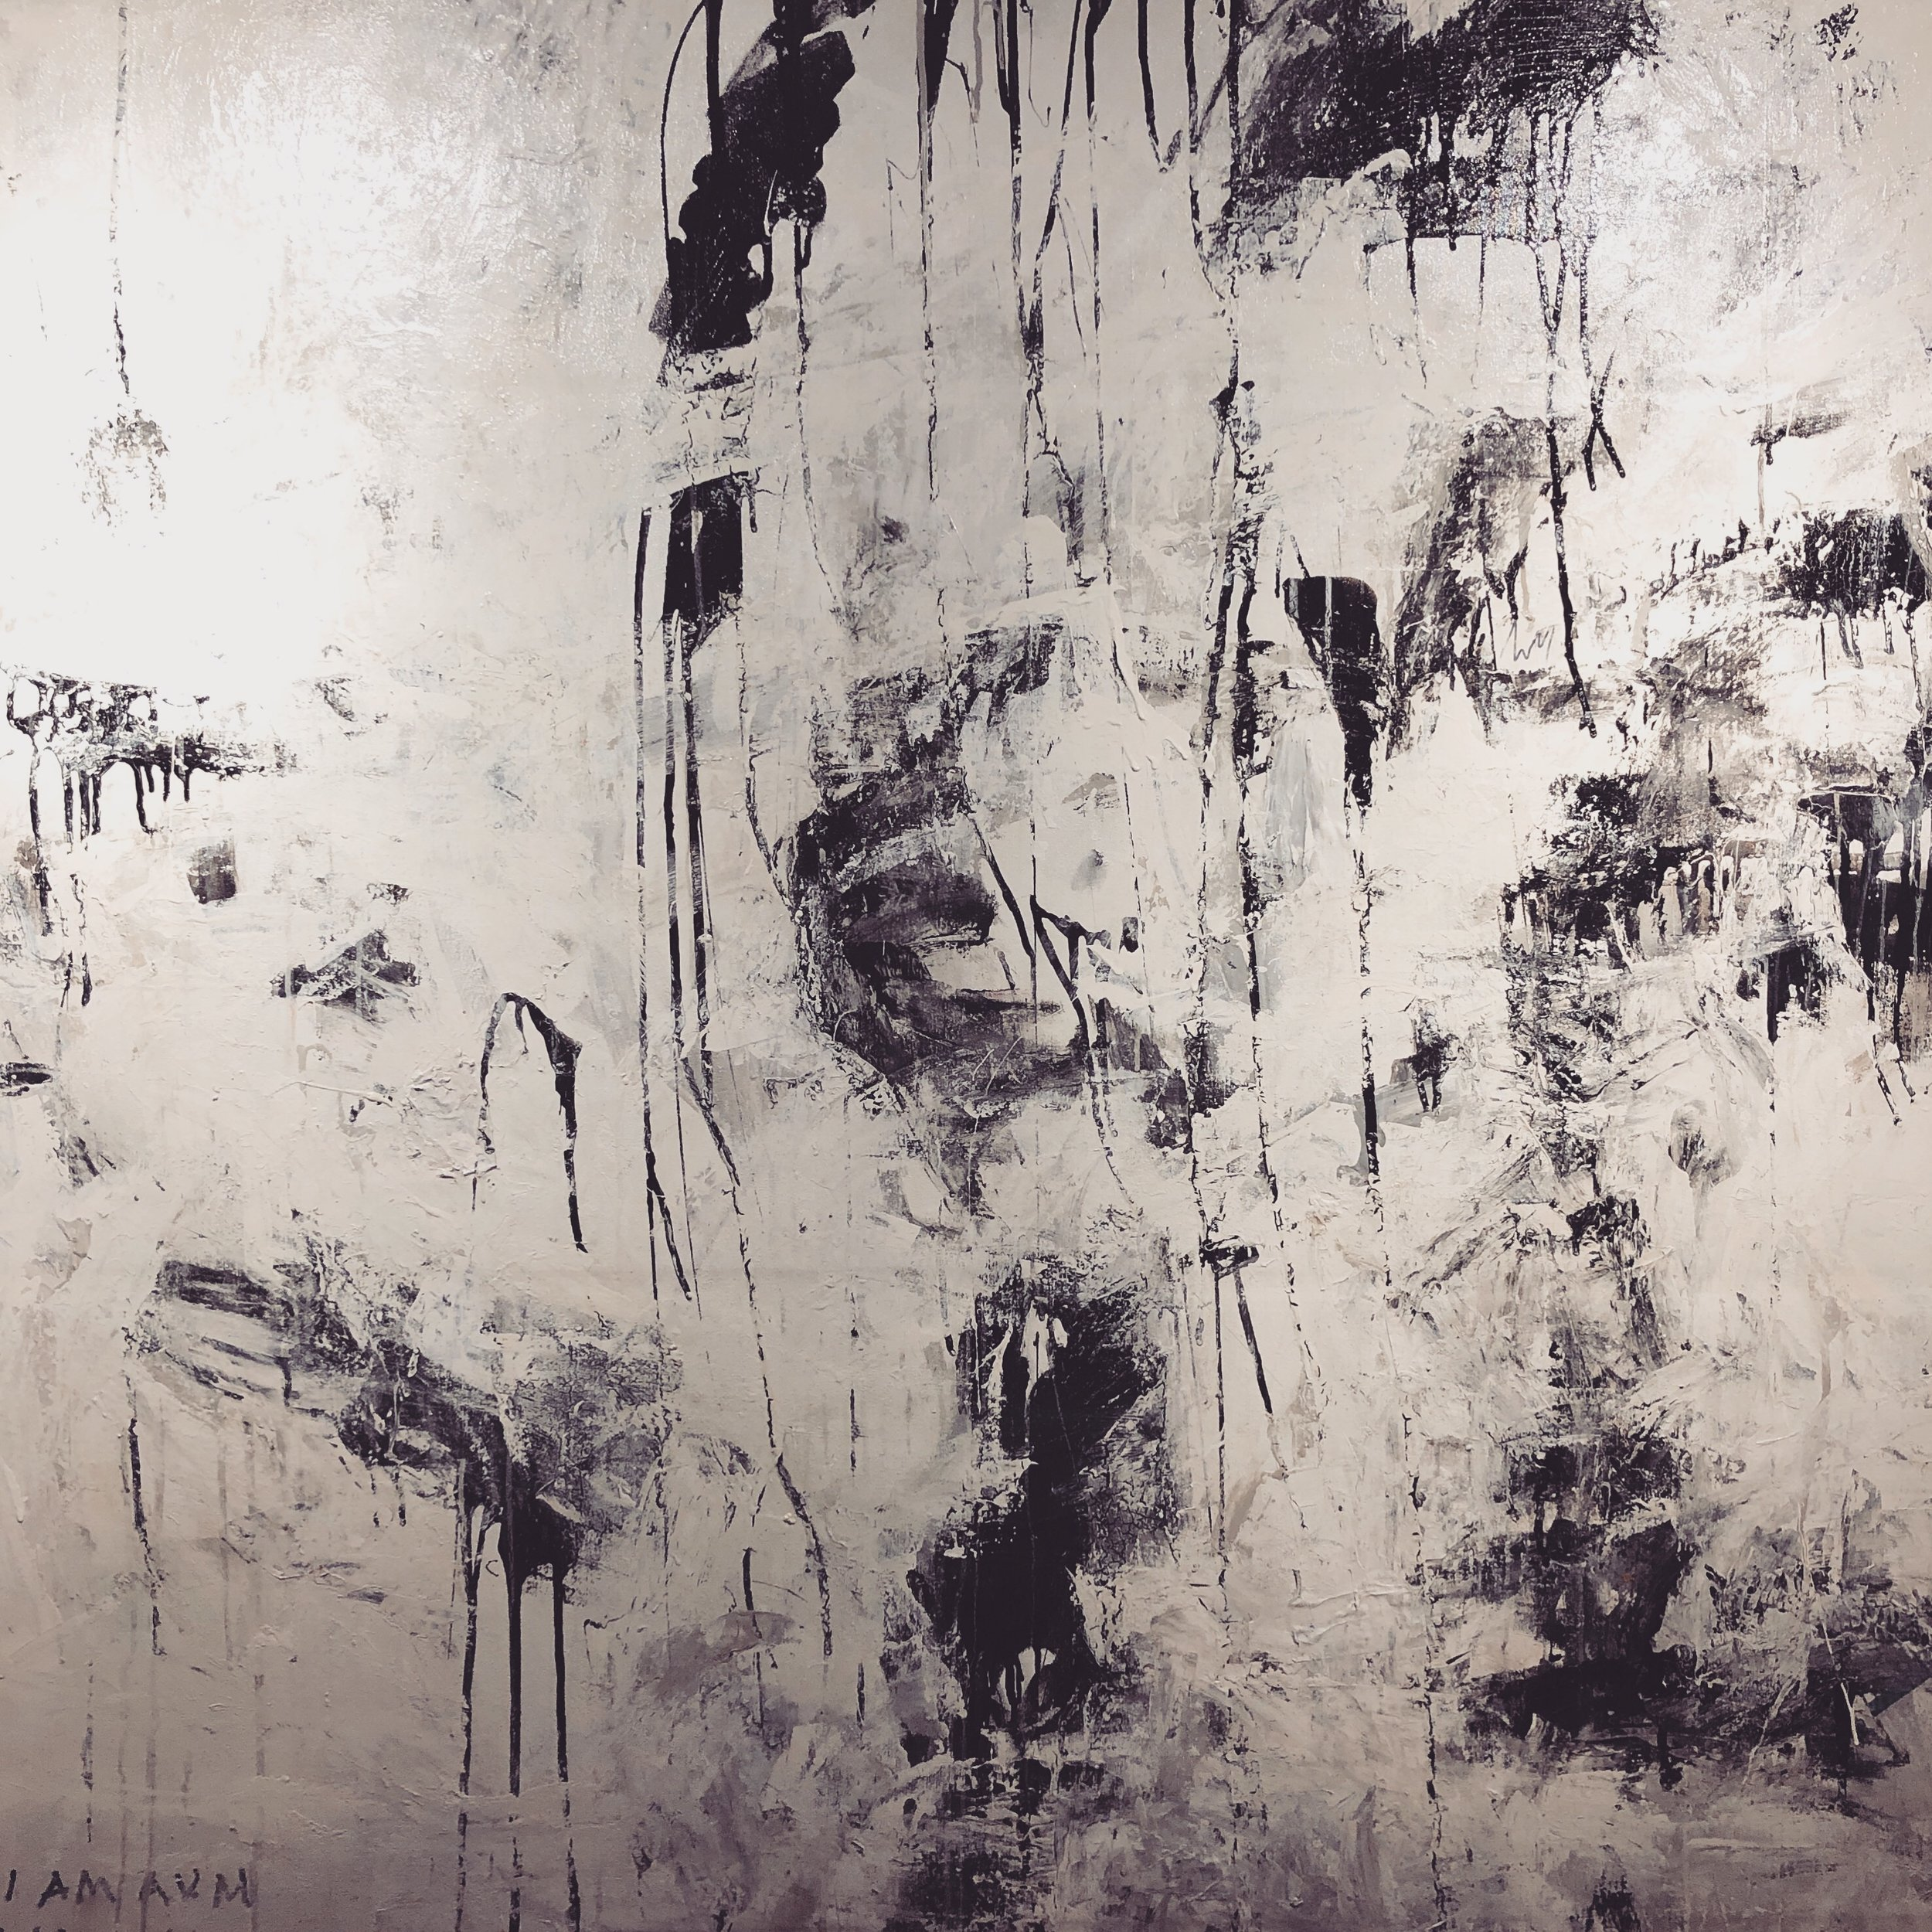 B + W - B + W is the second black and white painting of AVM. B+W is an original large scale Black and White painting on canvas. Created for impact and zen.